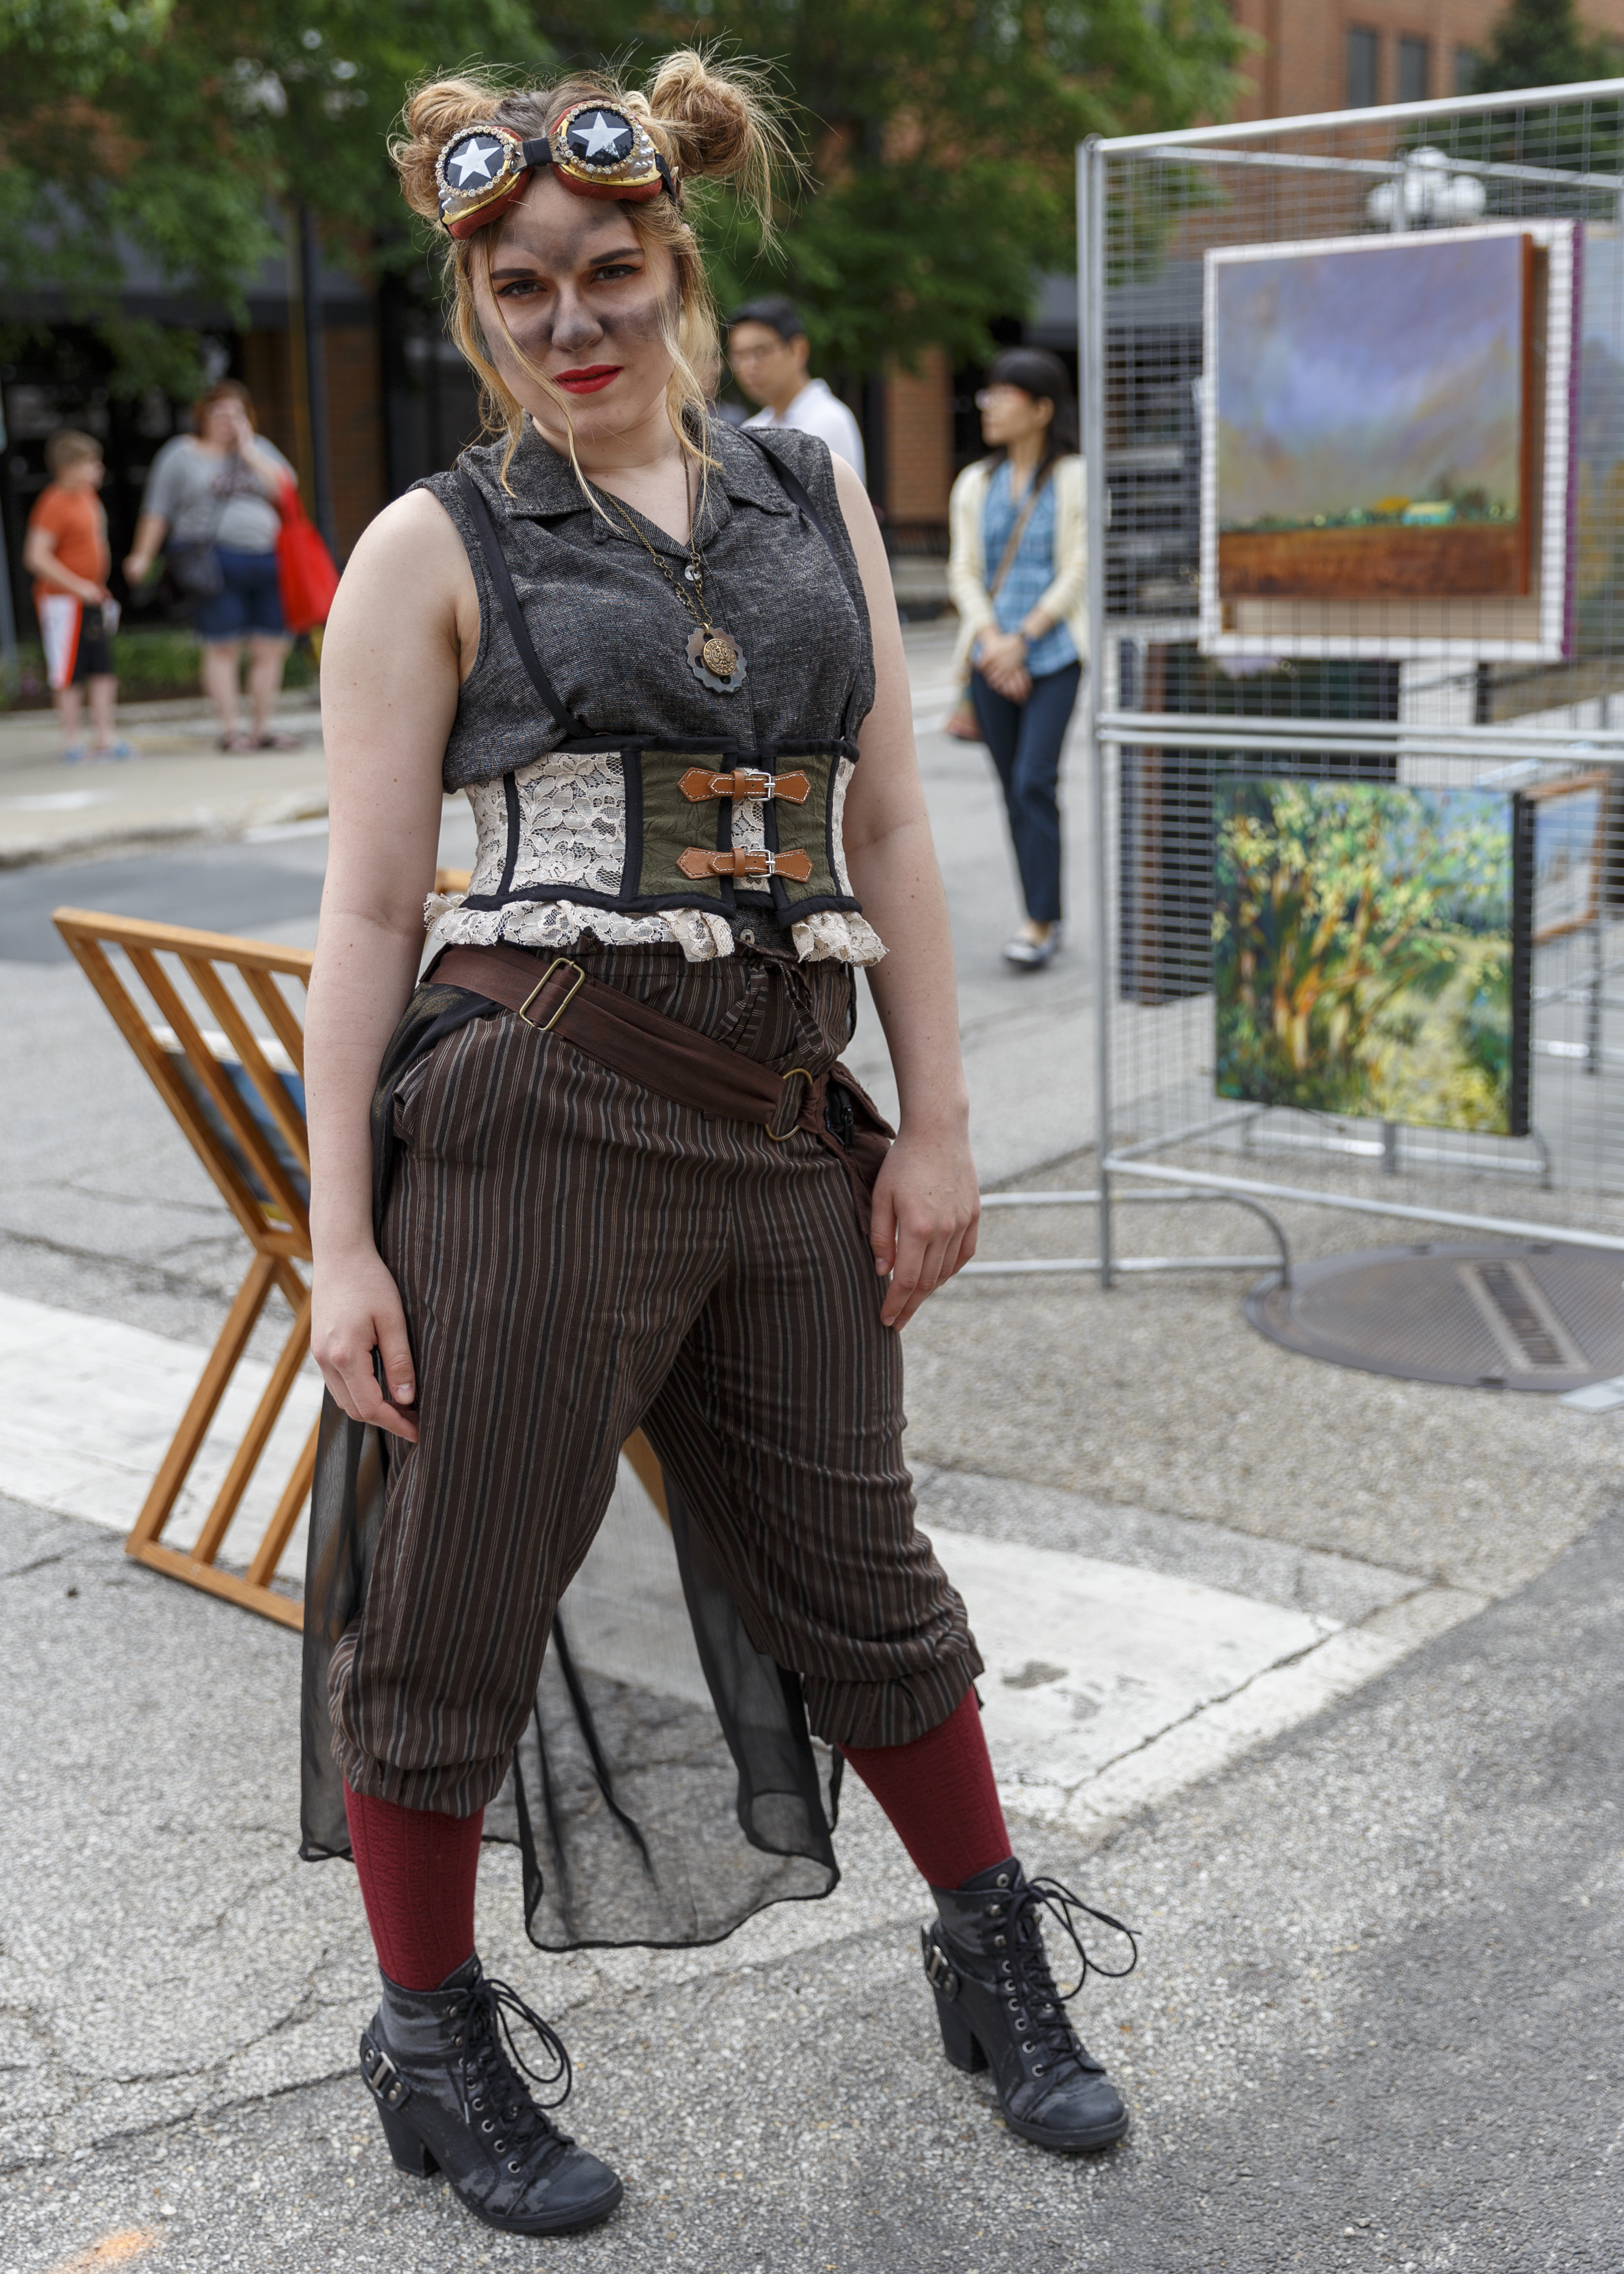 Steam Punk tough